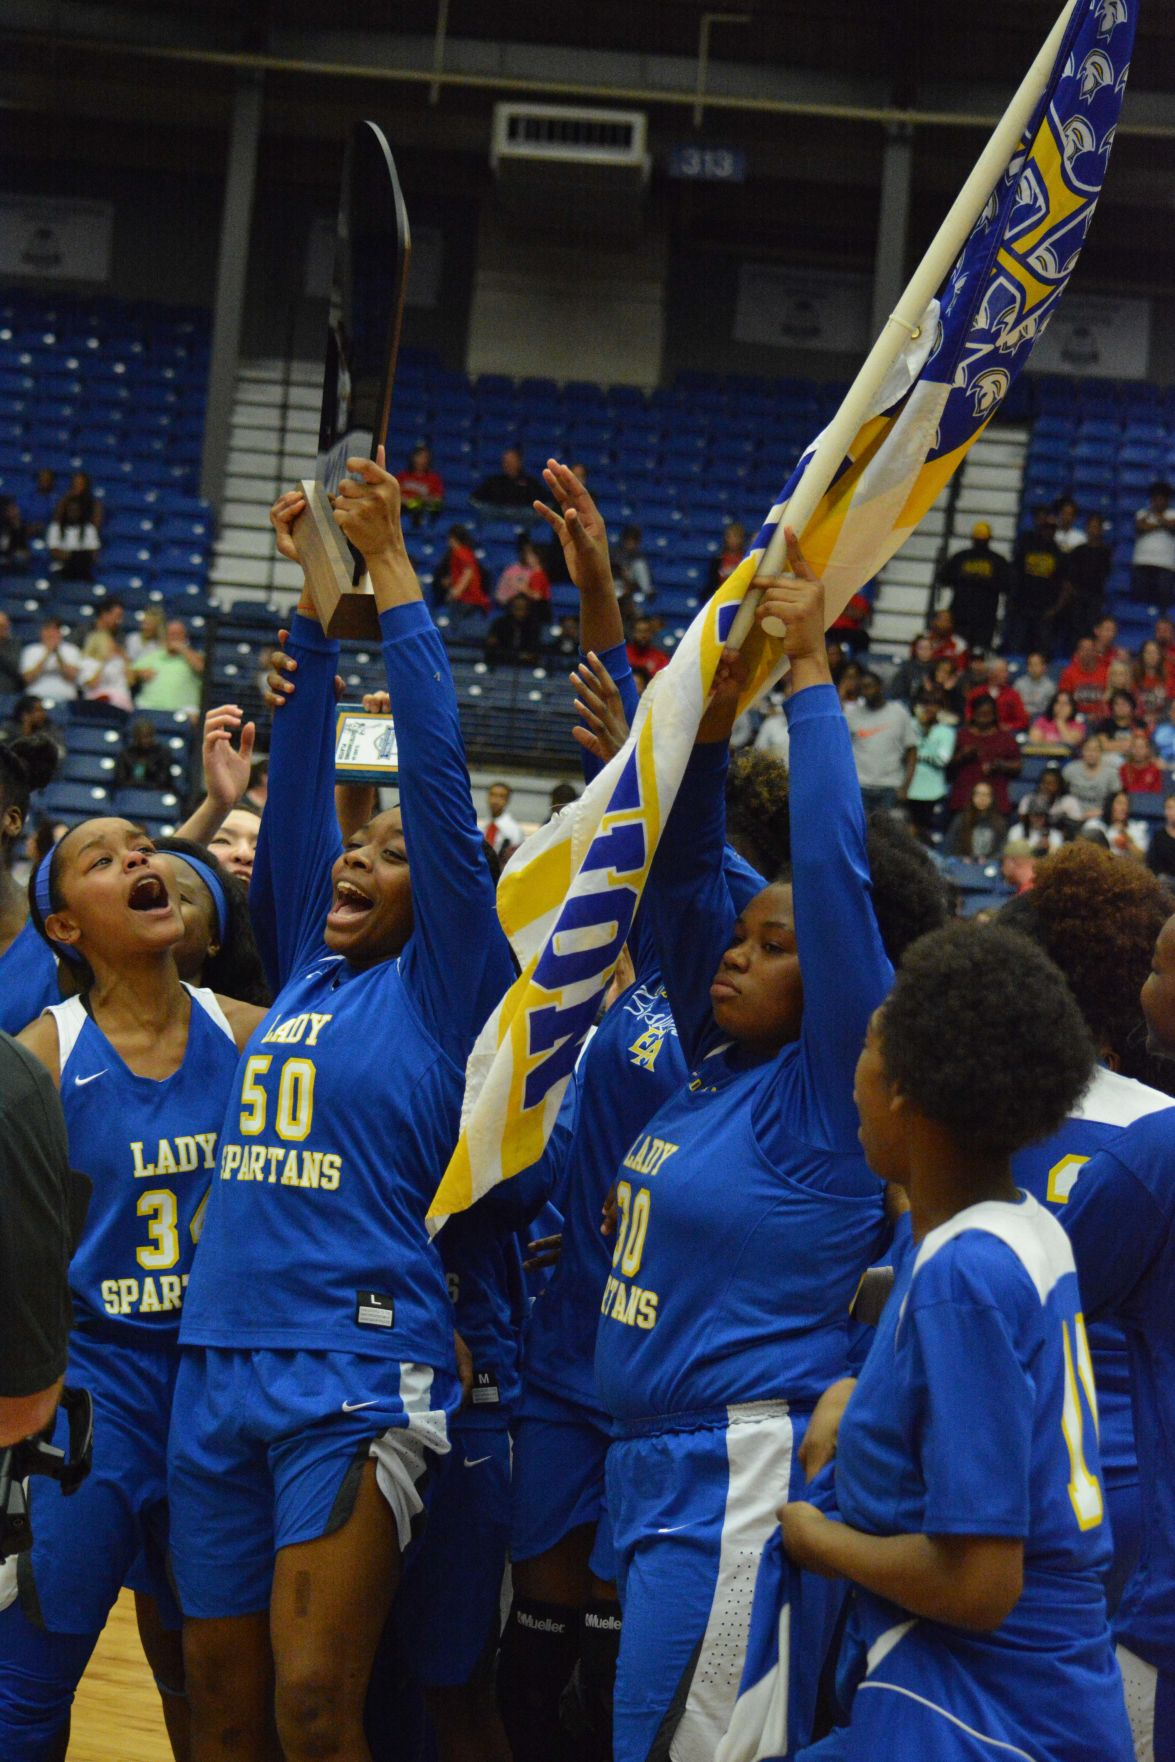 LHSAA State Girl's Basketball Championship (copy)